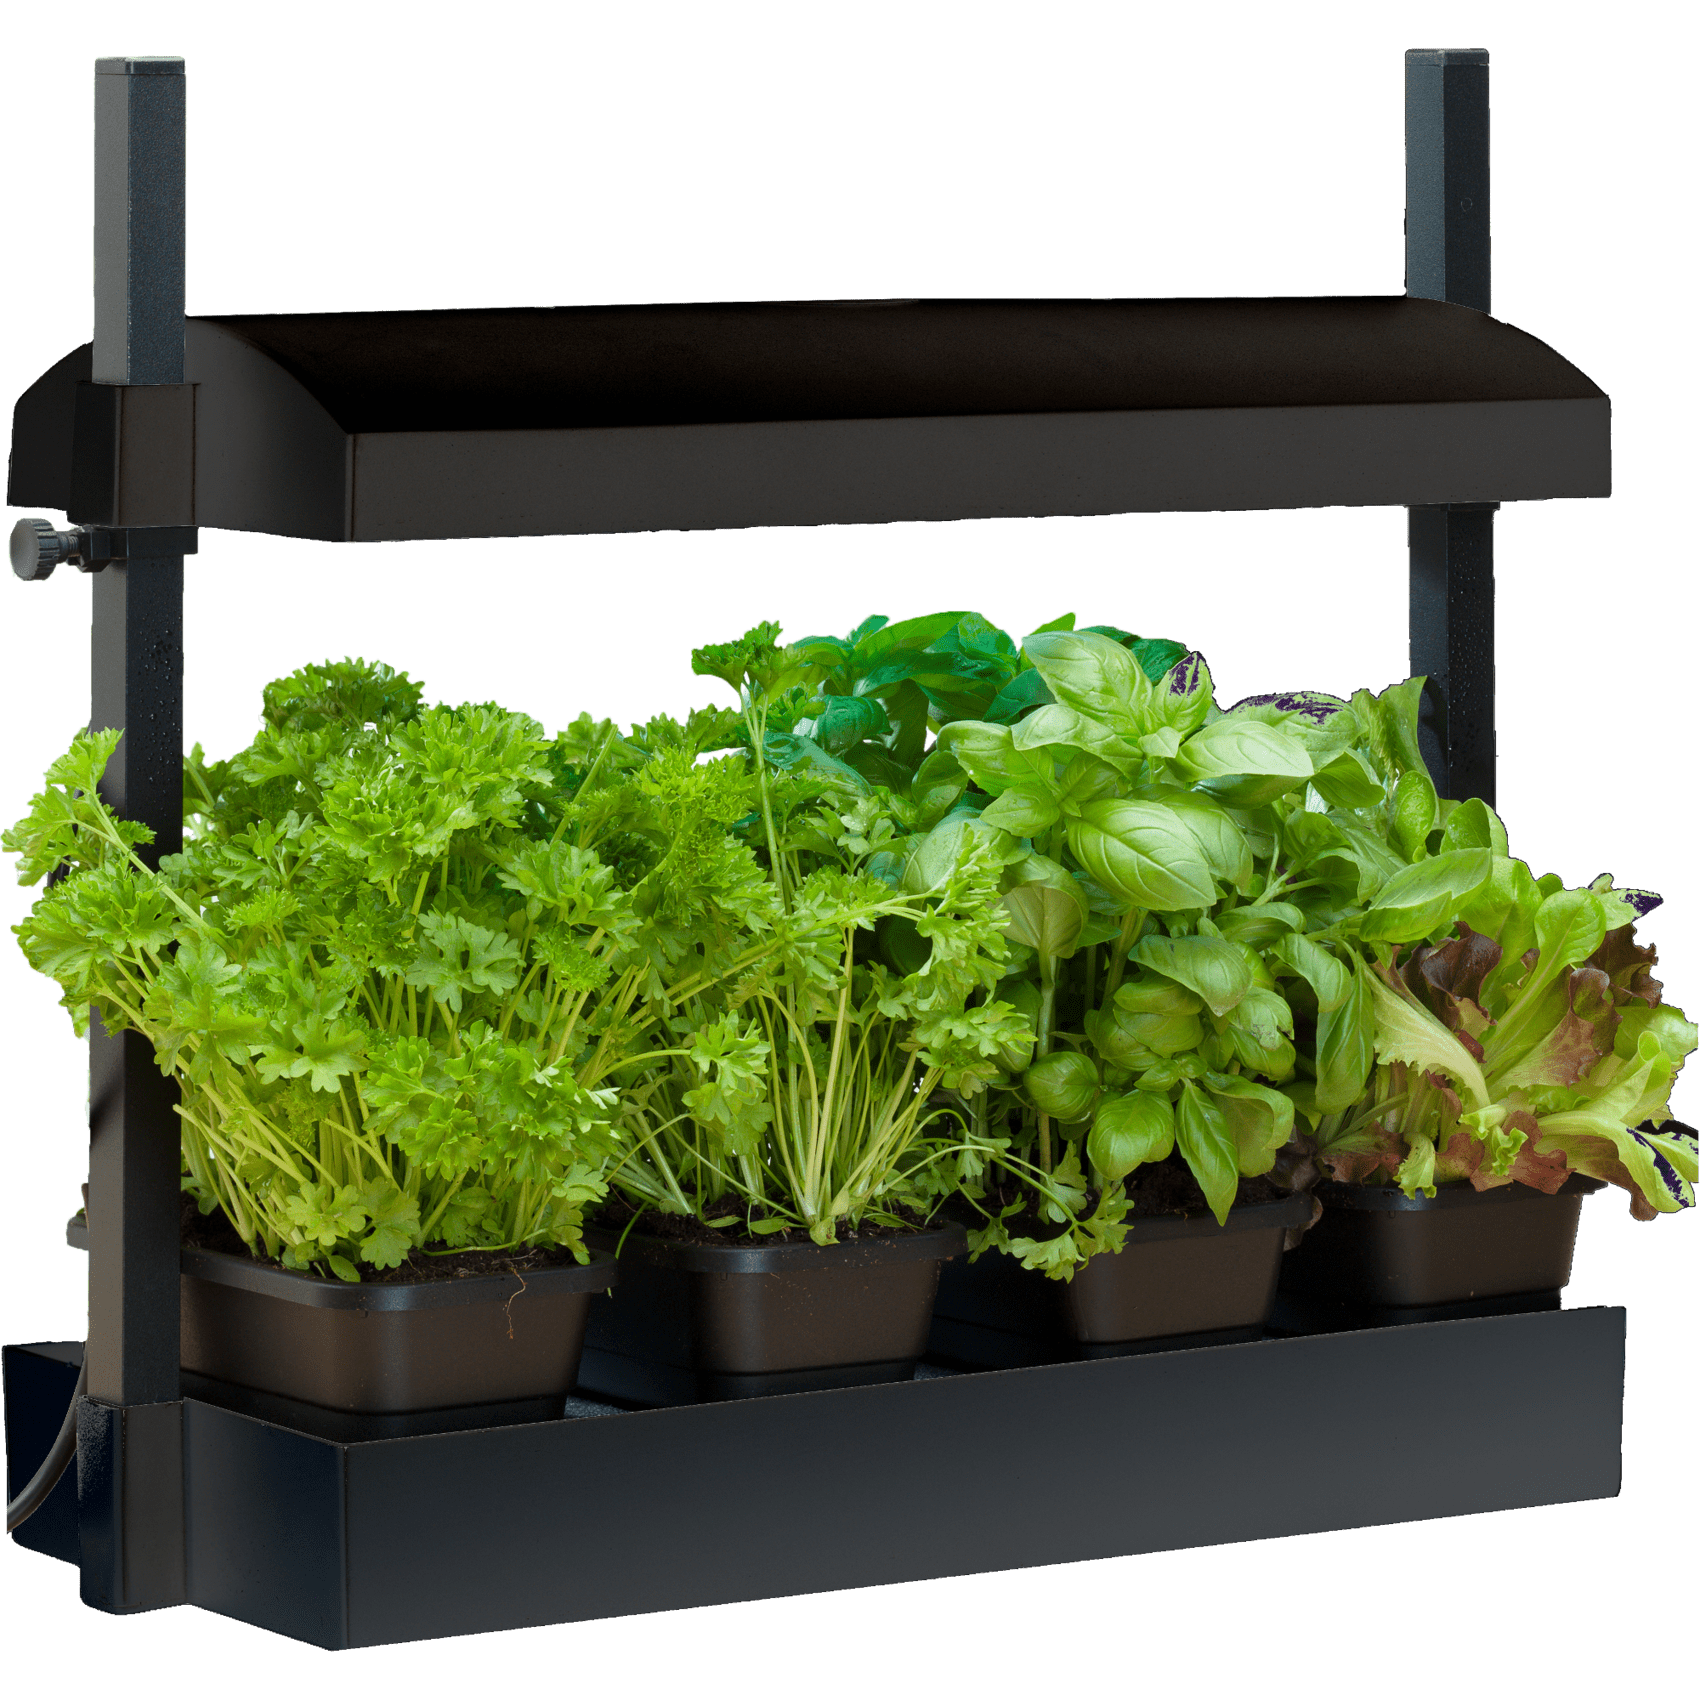 8 Indoor Garden Kits That You Can Still Order Online Daily Front Row